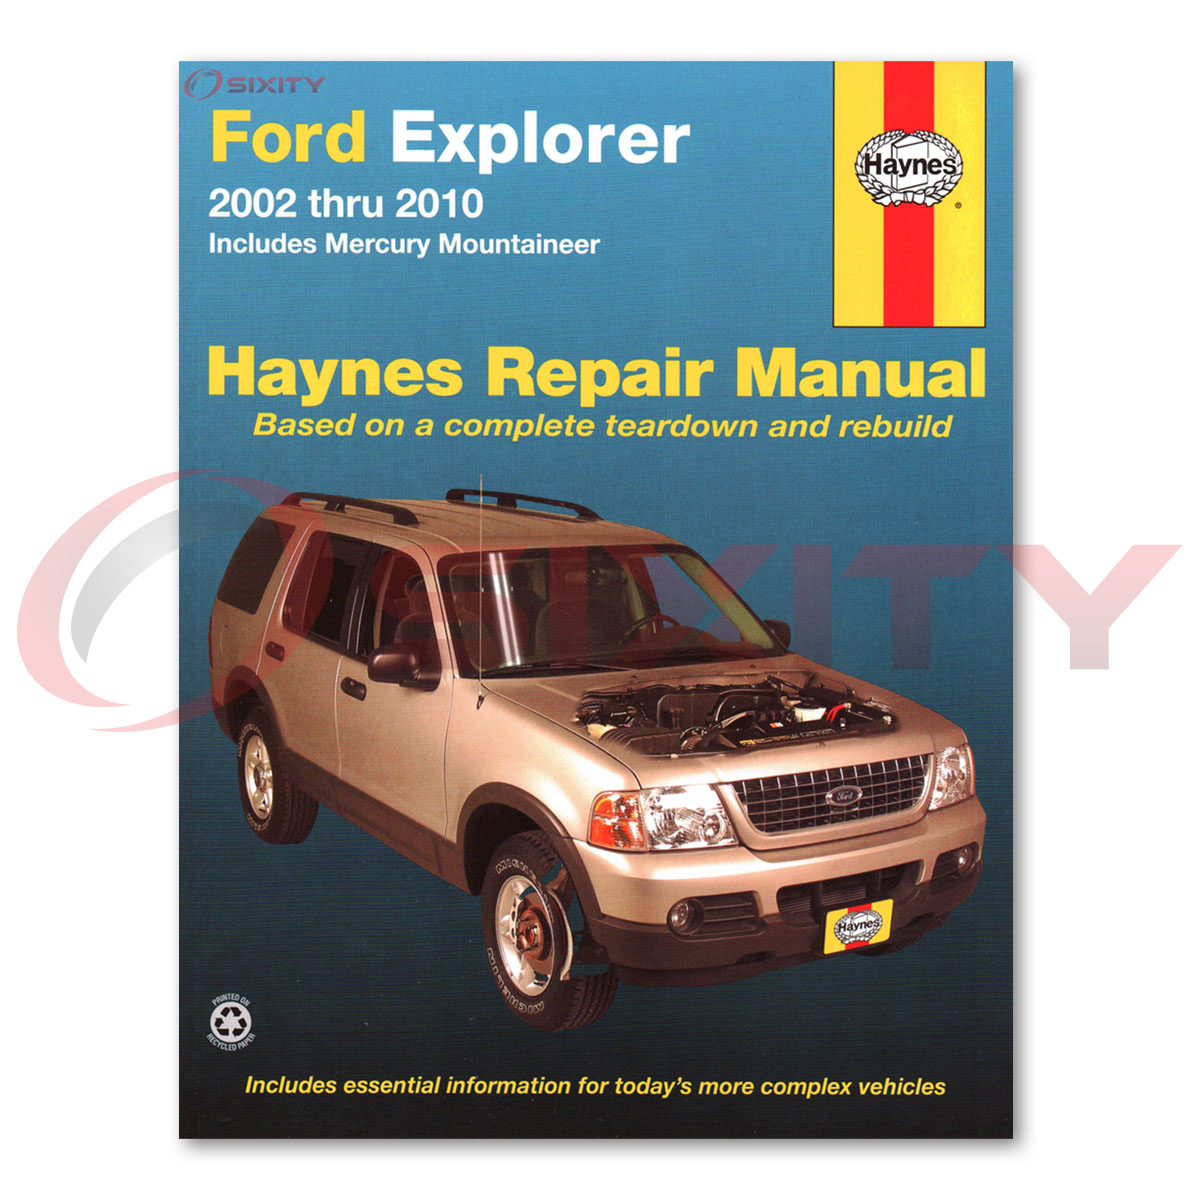 Ford Explorer Haynes Repair Manual Xlt Nbx Xls Postal